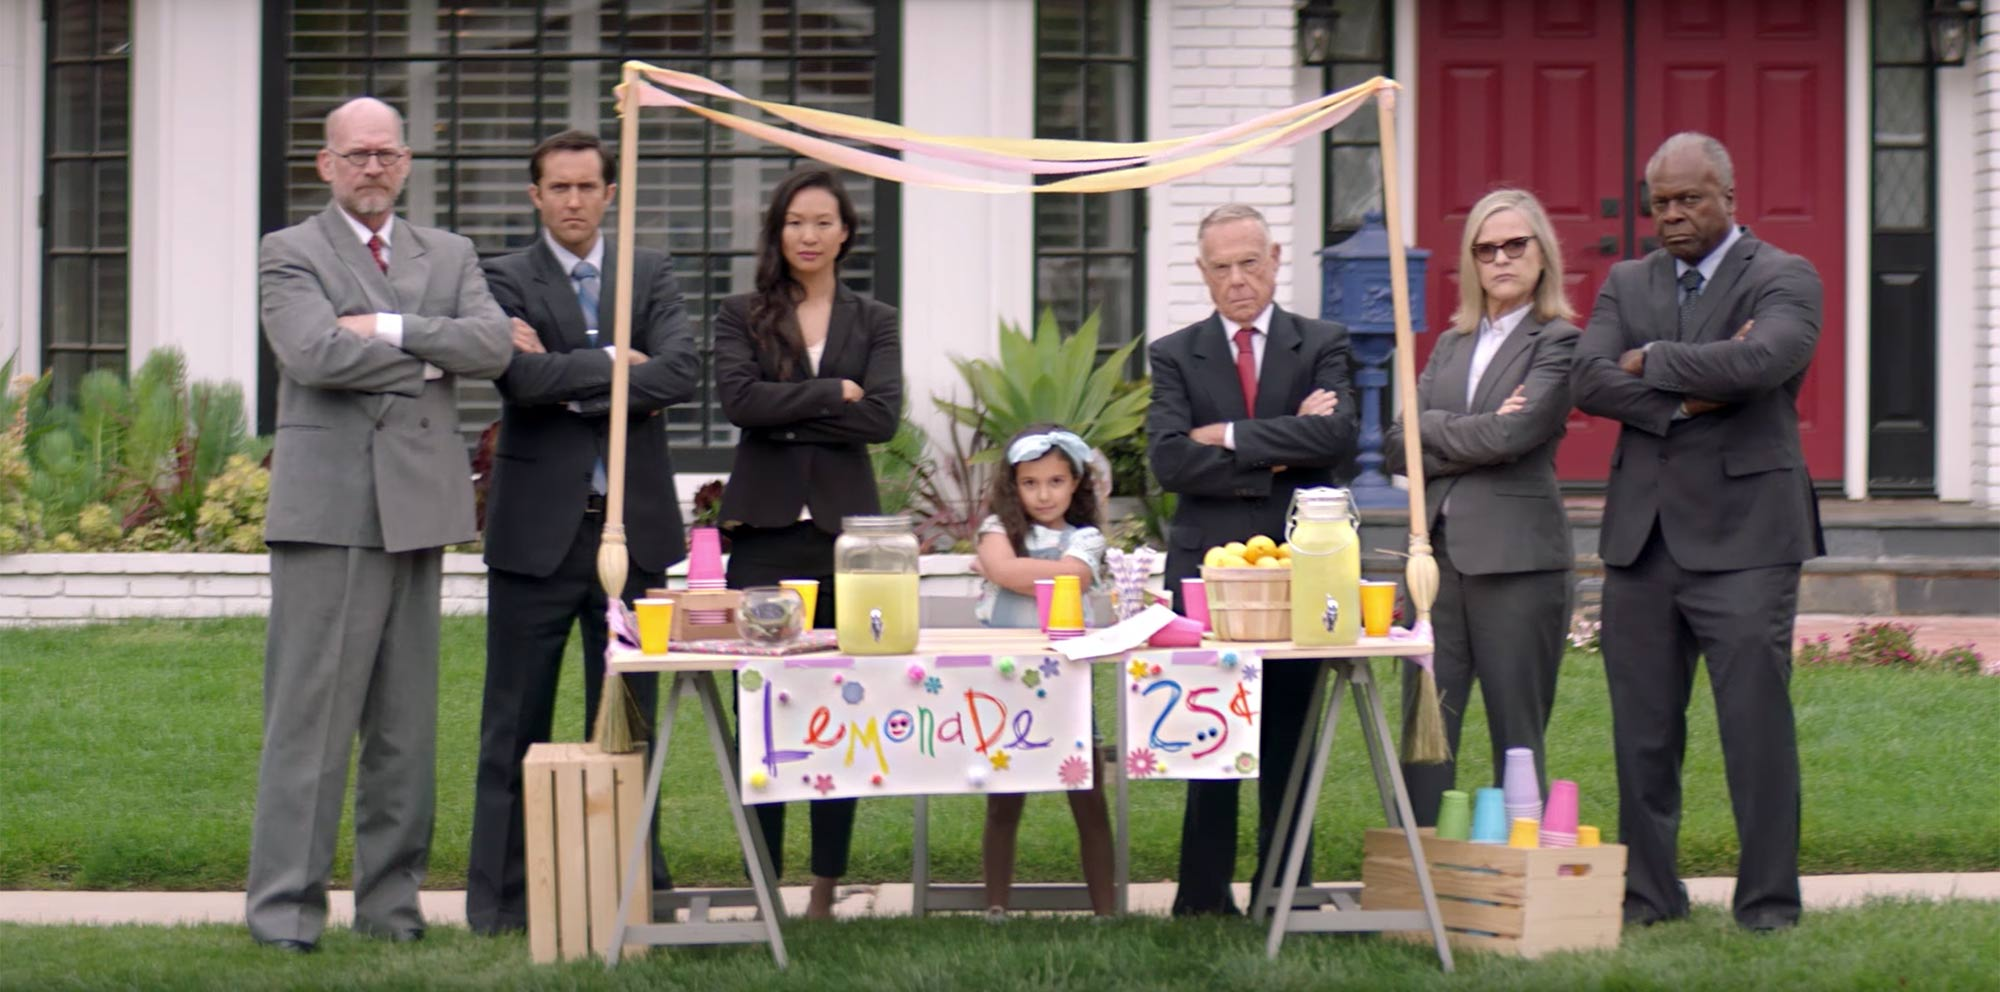 Kraft Country Time Legal-Ade pays for lemonade stand legal fees for kids